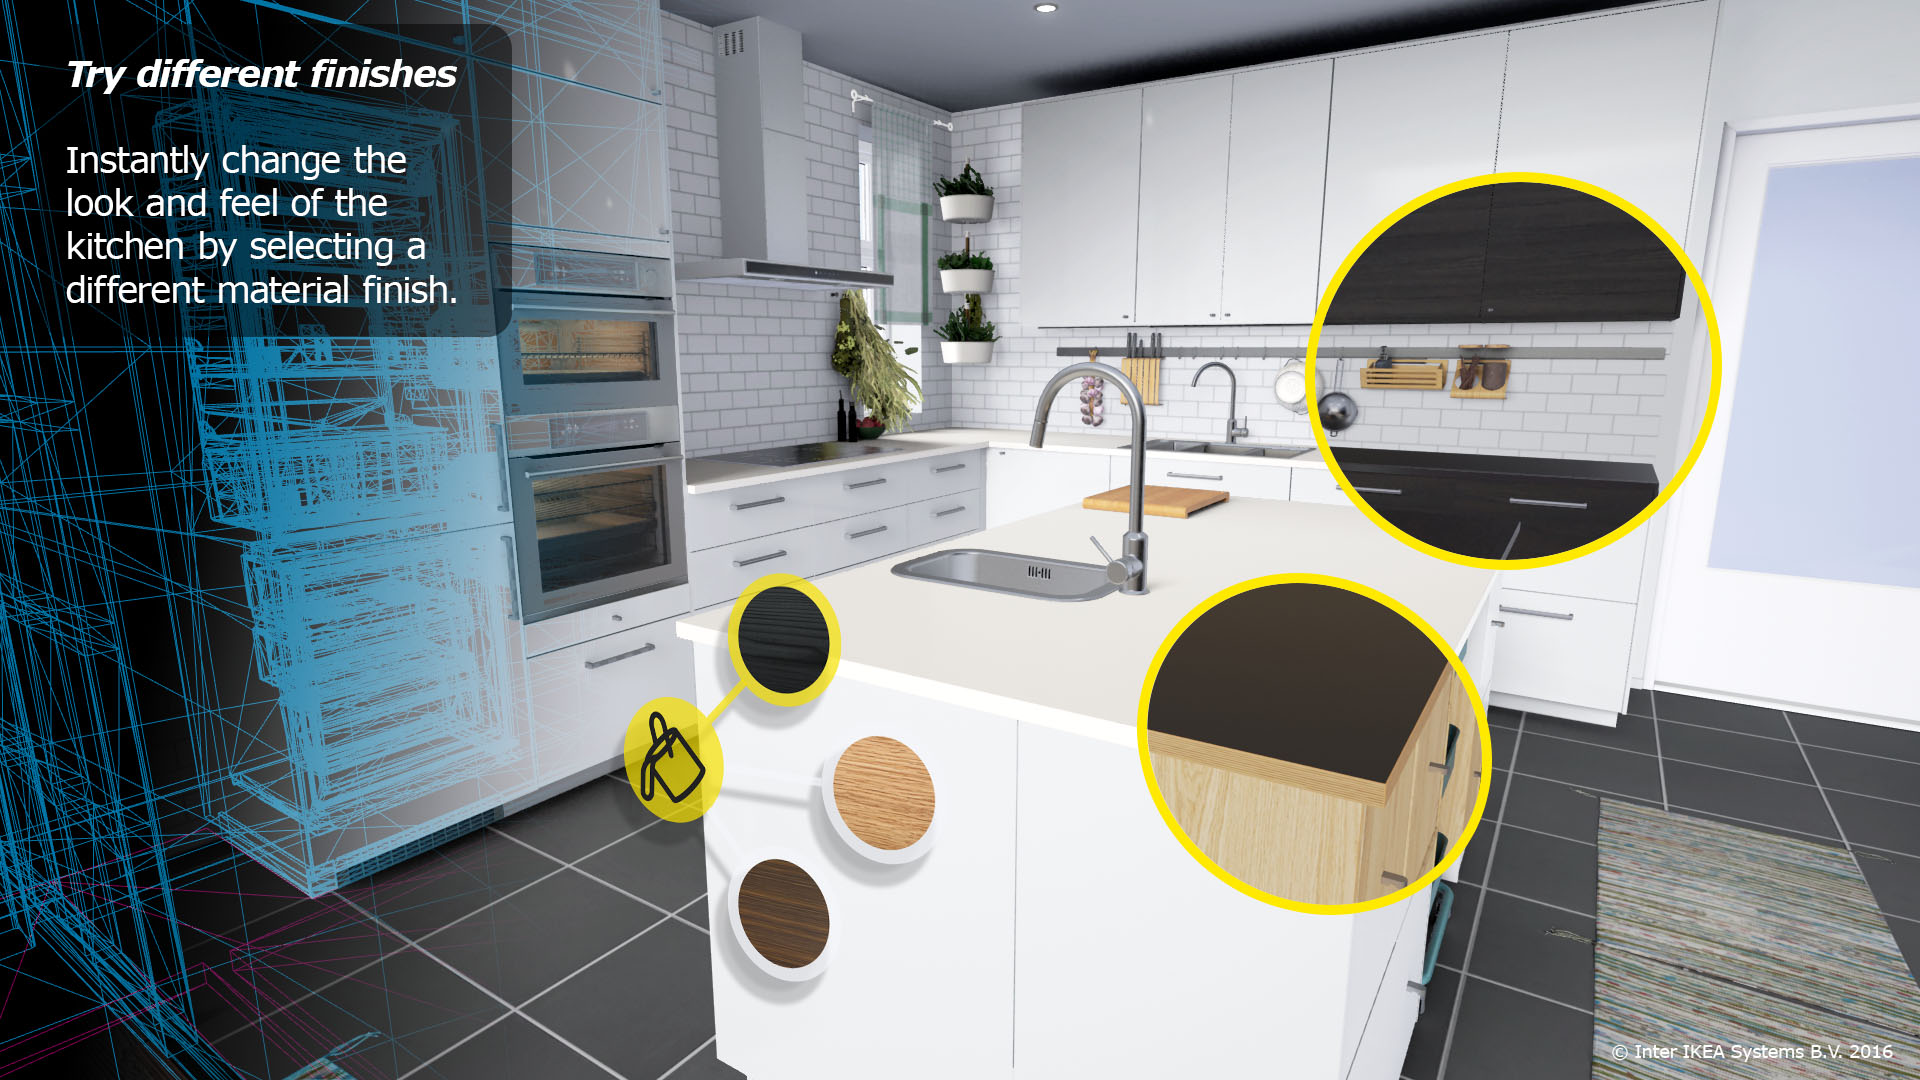 Ikea Küche Montage Video Ikea Vr Experience On Steam